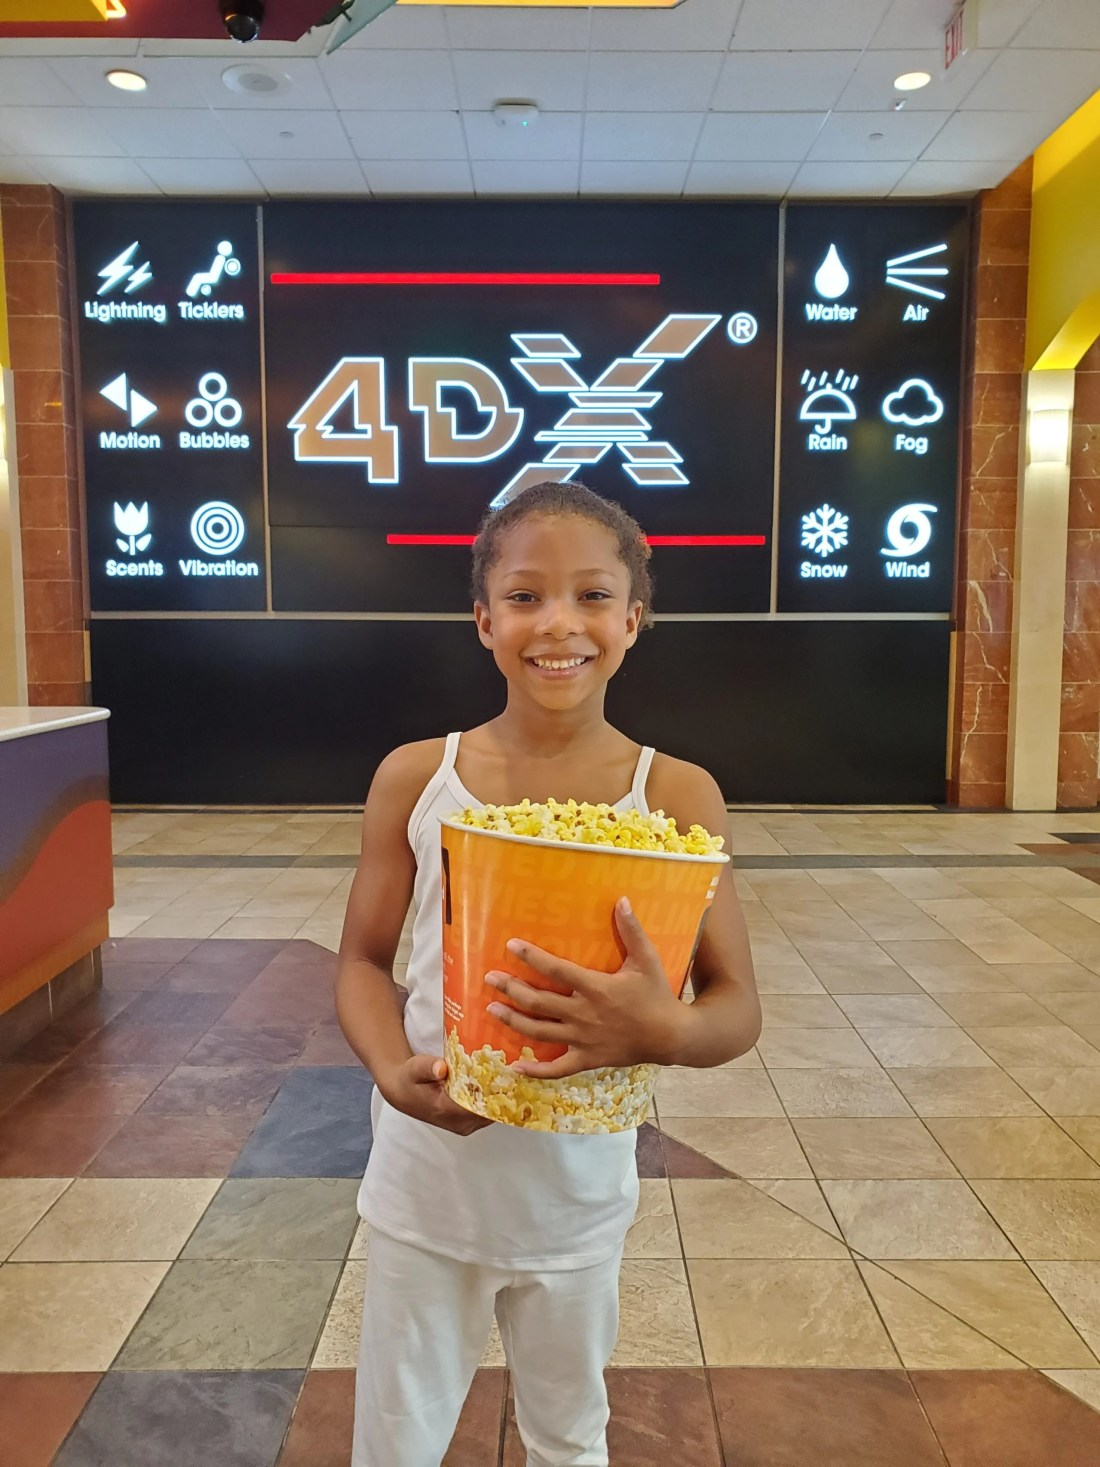 Abominable Movie Review - 4DX Experience at Regal Cinema Esuun. Catch the wonderfully captivating film 'Abominable' in 4DX at your nearest Regal Cinema Theatre. Set out on an epic 2,000-mile adventure from the streets of a Chinese city to the breathtaking Himalayan snowscapes.